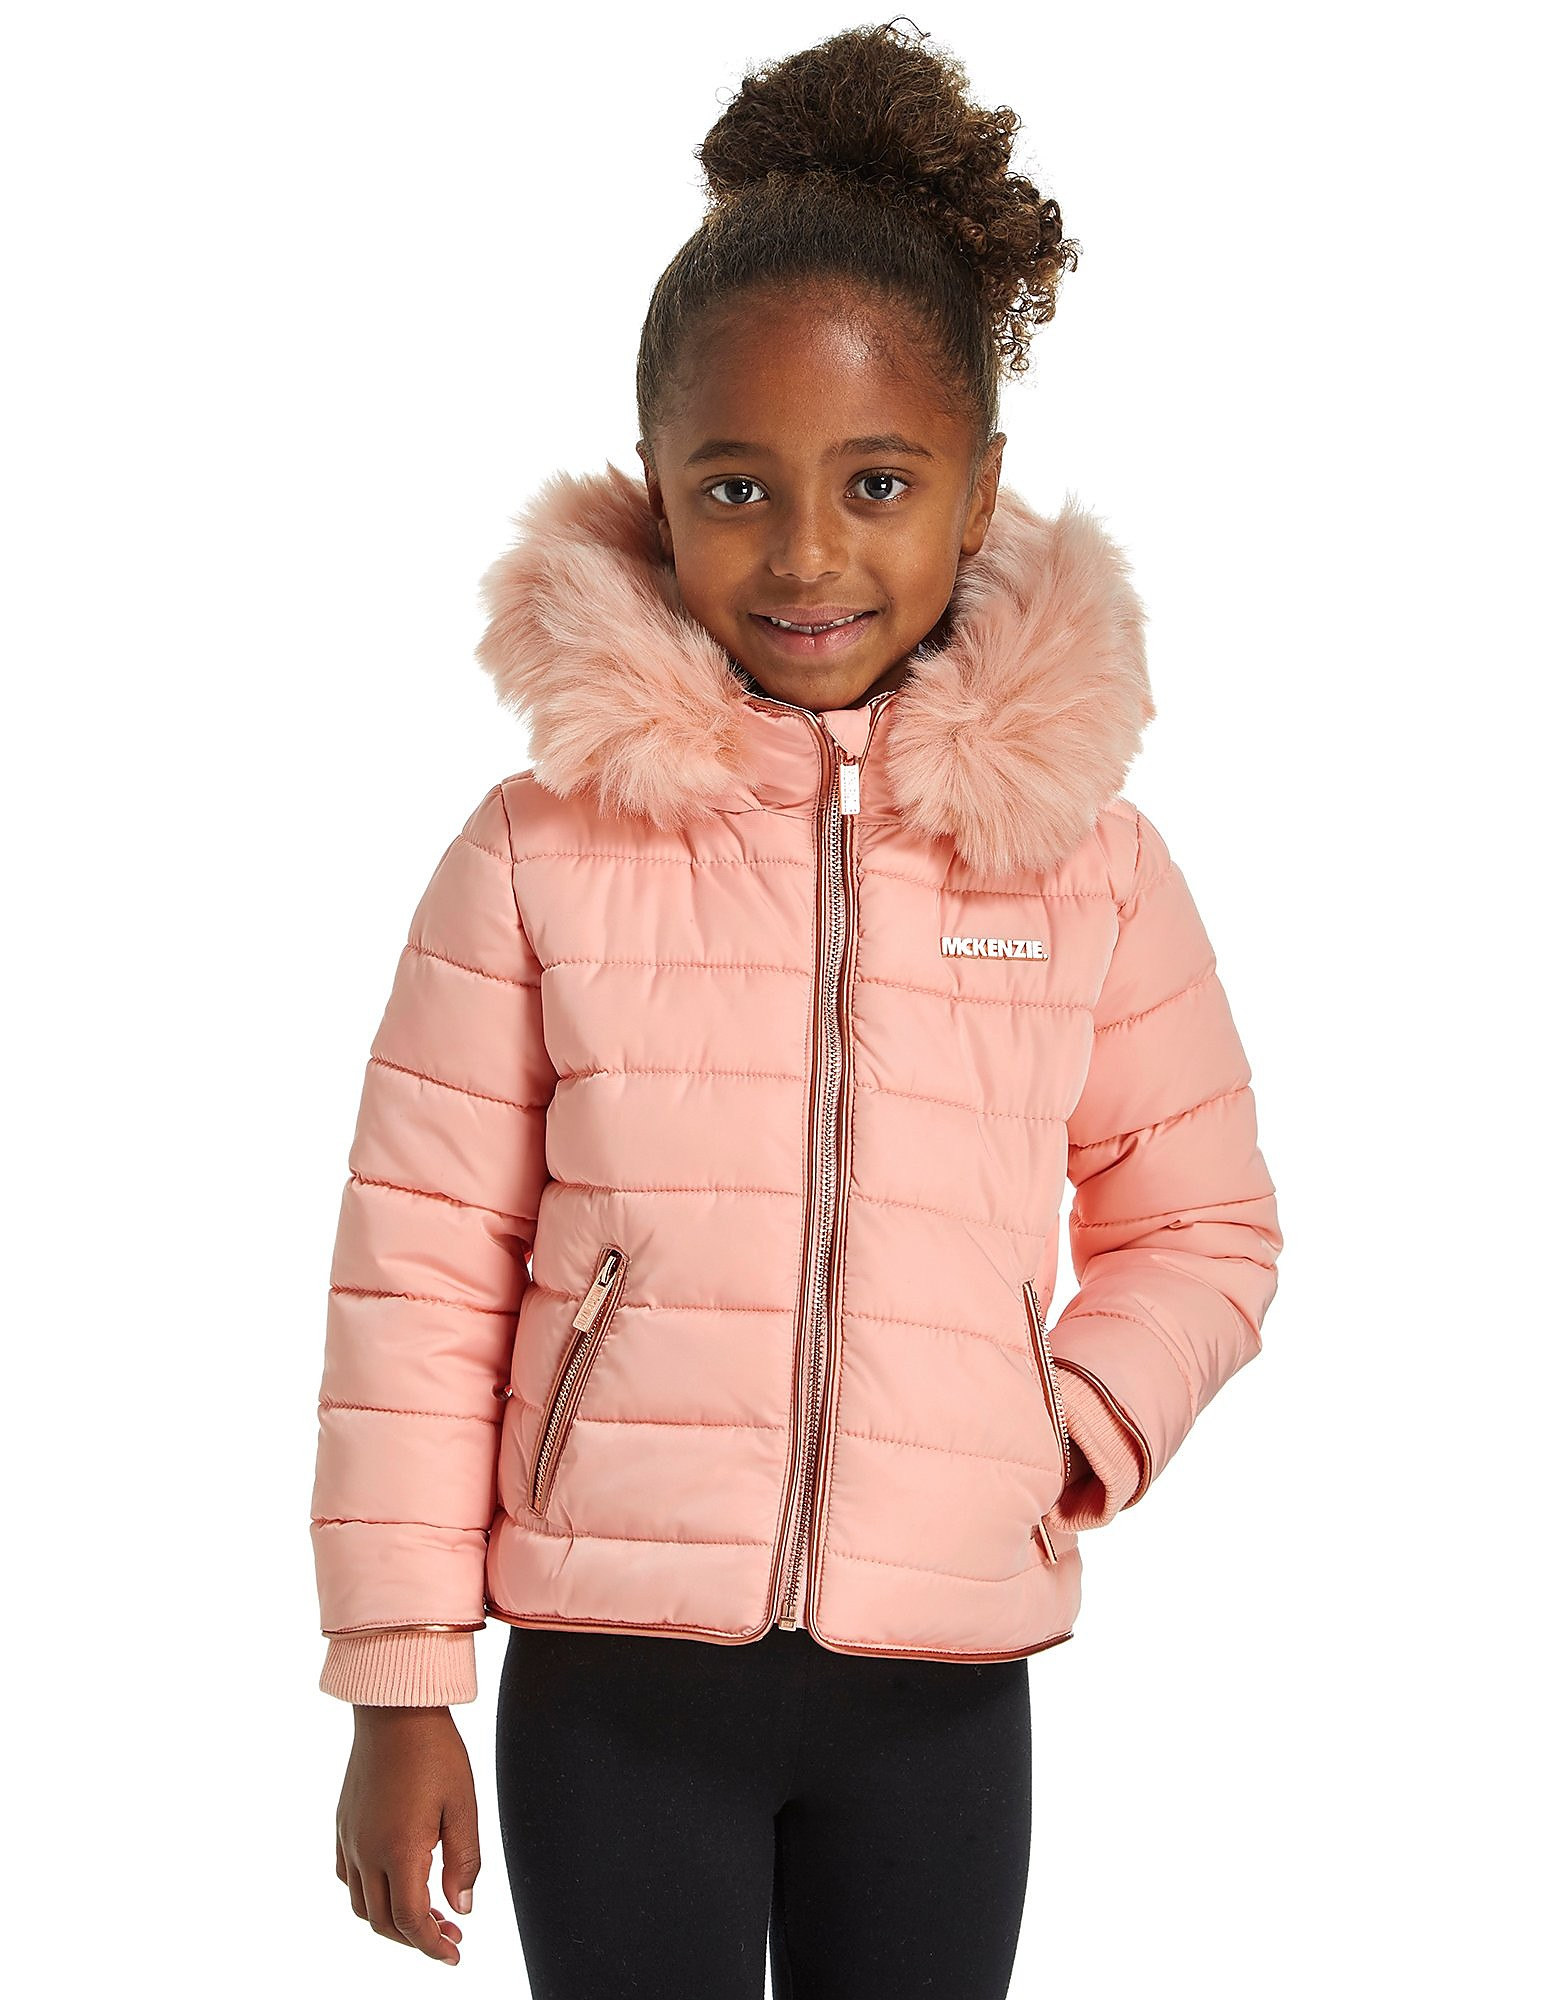 McKenzie Girls' Lola Jacket Children